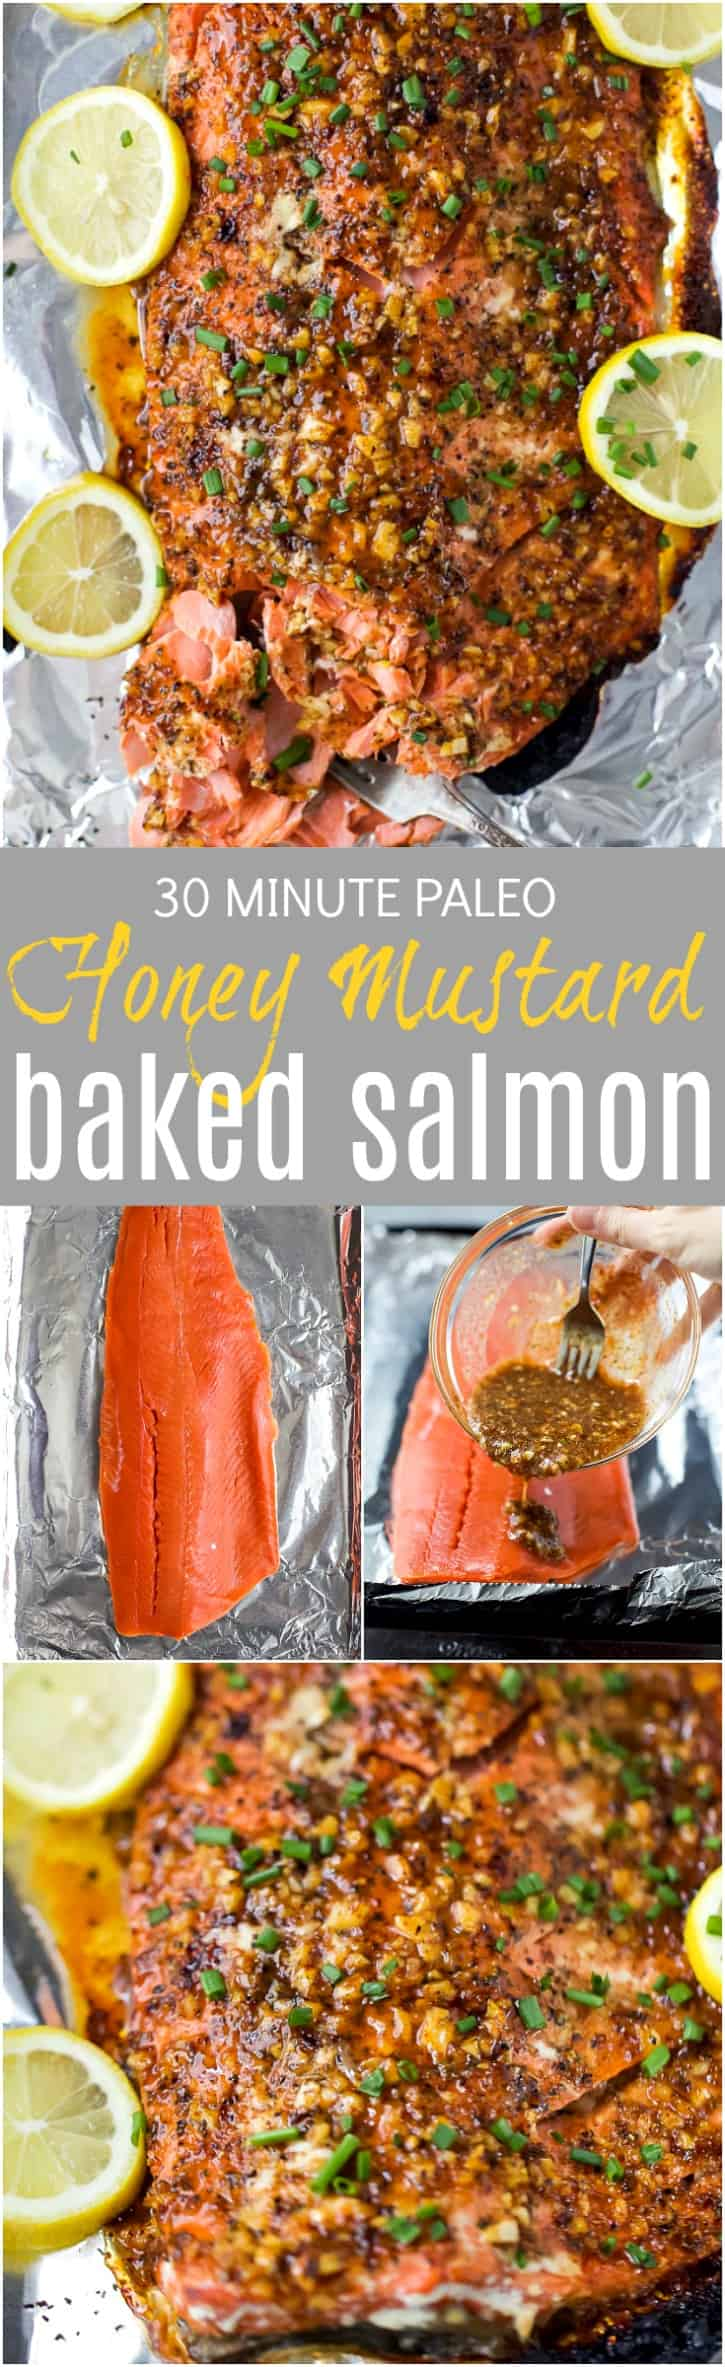 Title Image for Honey Mustard Baked Salmon